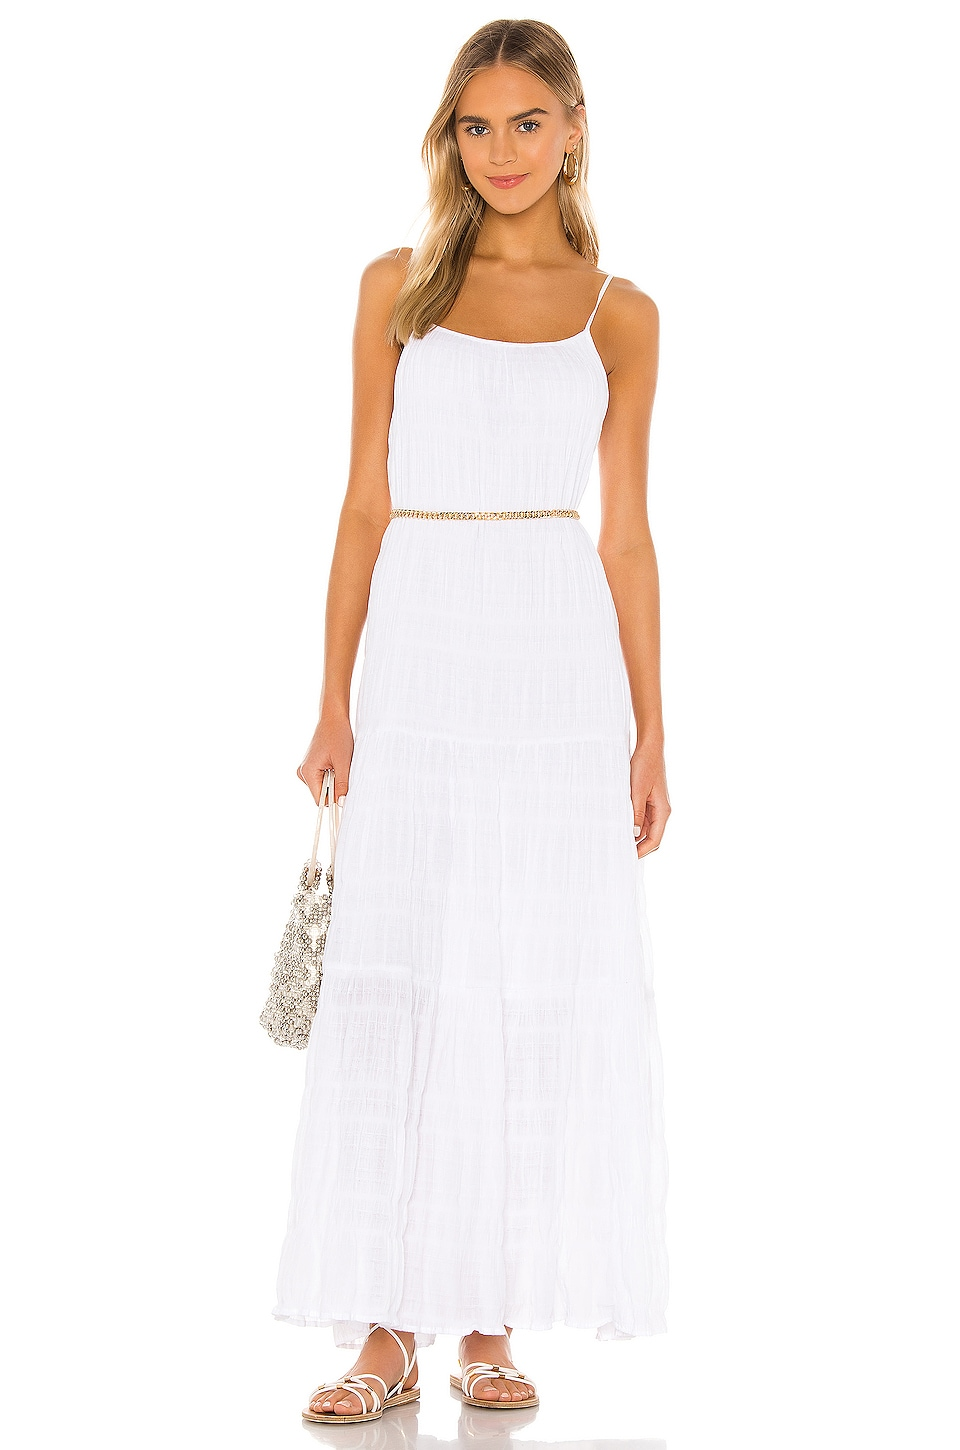 Roman Holiday Maxi Dress             BB Dakota                                                                                                       CA$ 182.55 10